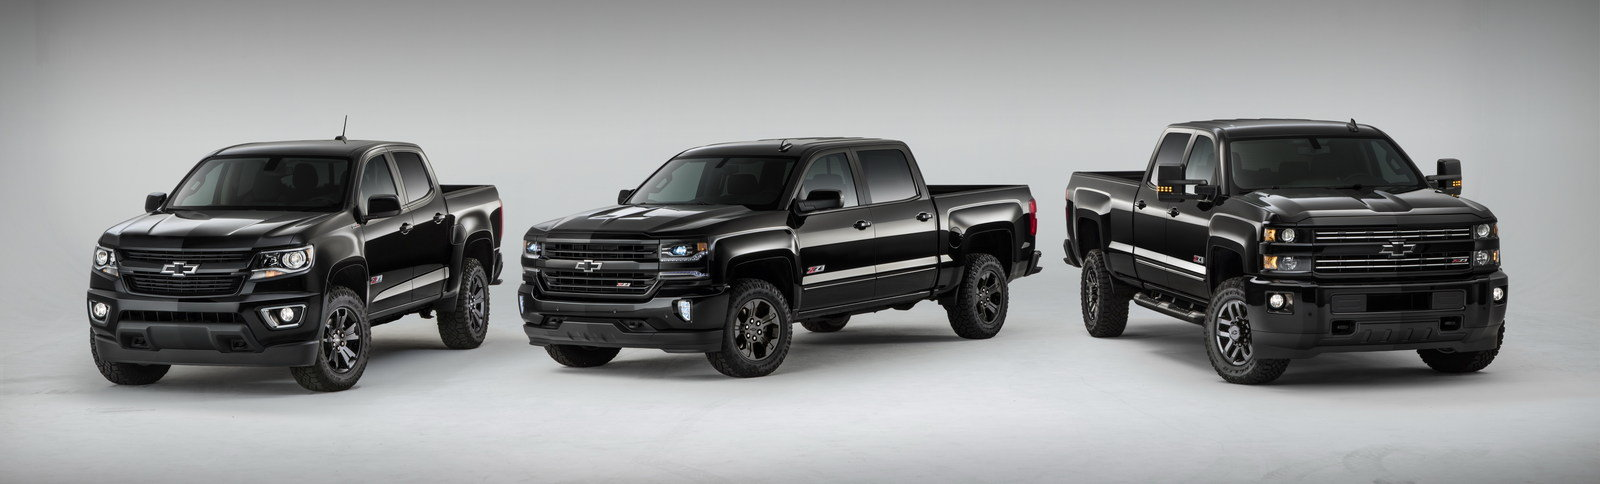 2016 chevrolet silverado 2500 hd z71 midnight edition picture 664979 truck review top speed. Black Bedroom Furniture Sets. Home Design Ideas